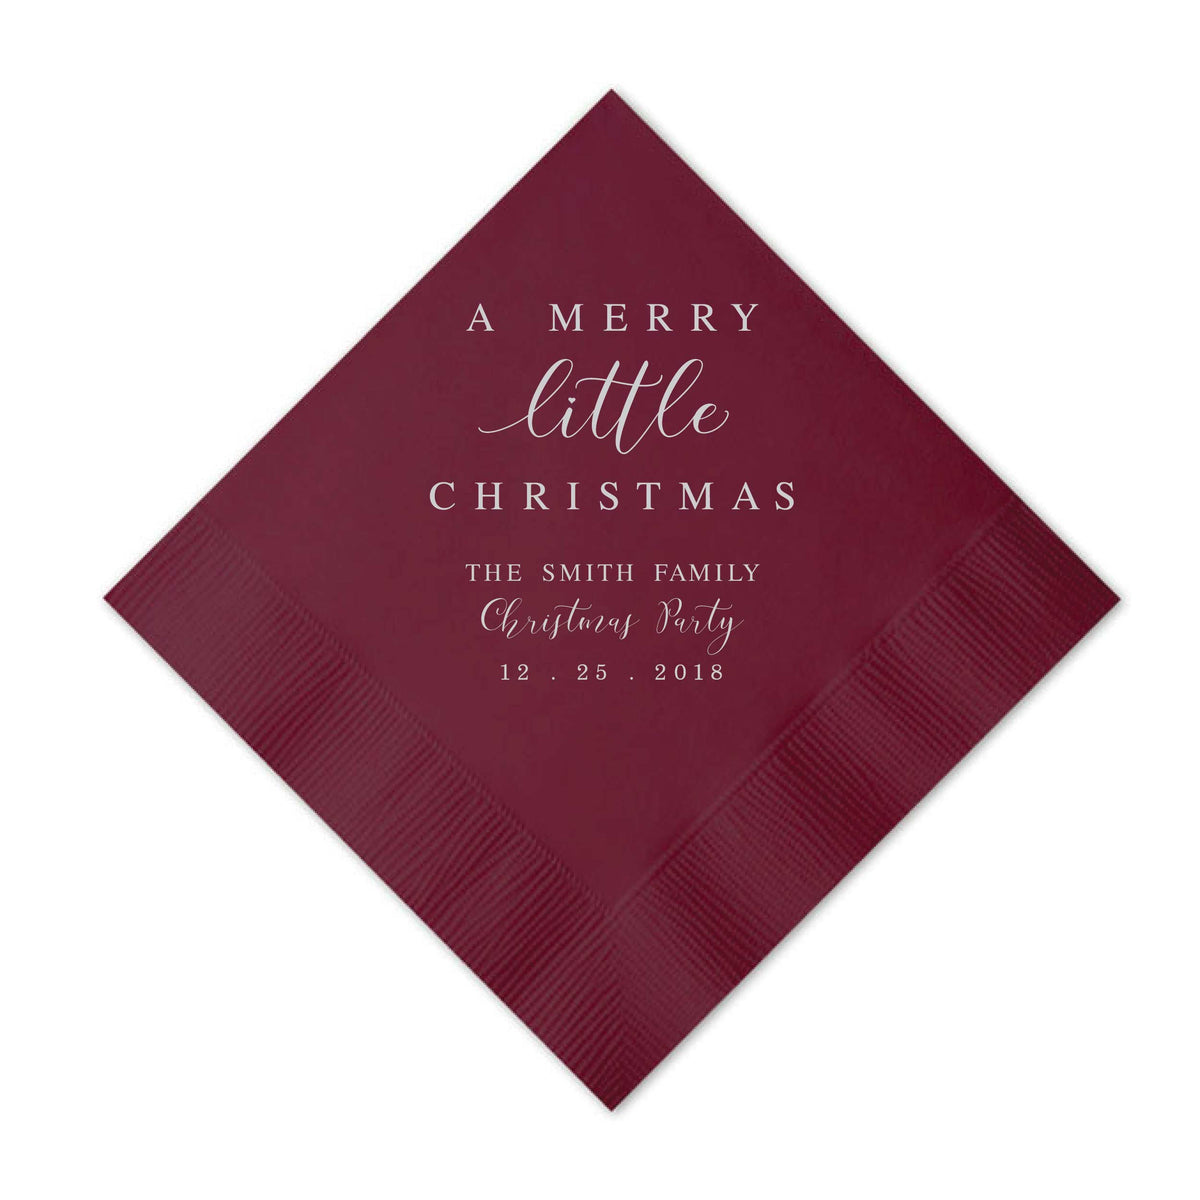 Christmas Napkins.Custom Christmas Napkins Merry Little Christmas Set Of 100